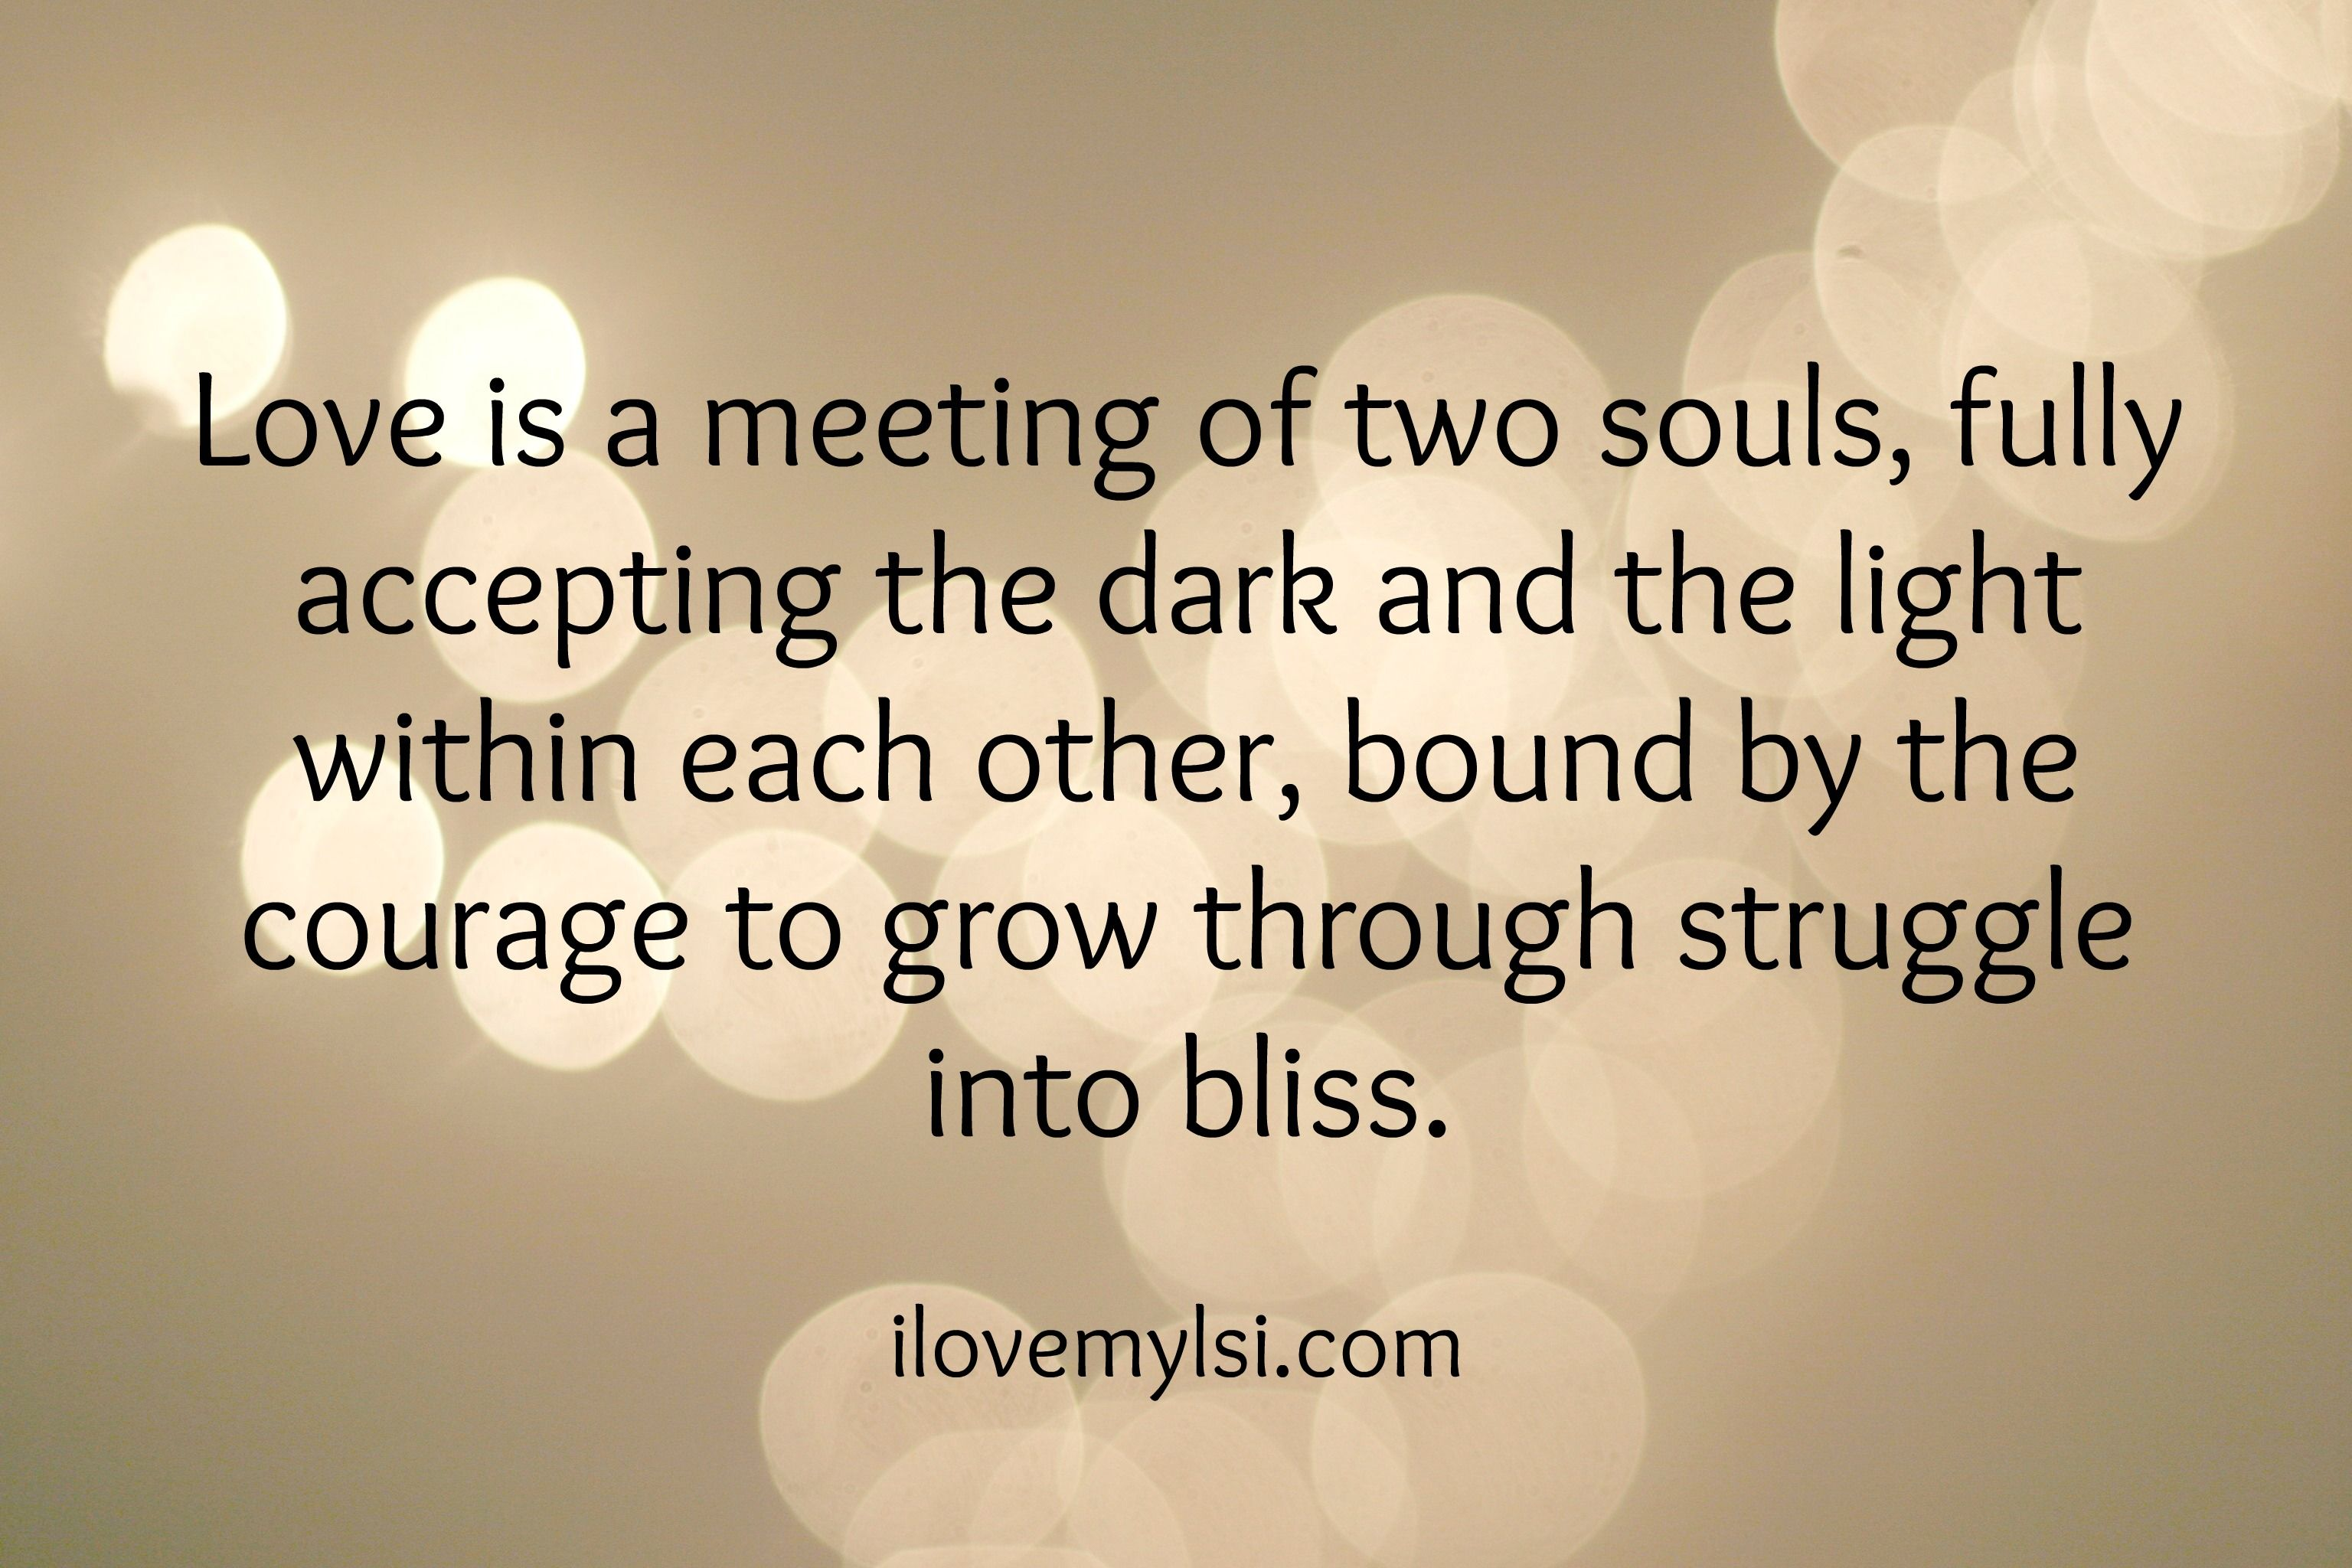 Love is a meeting of two souls love quotes Pinterest